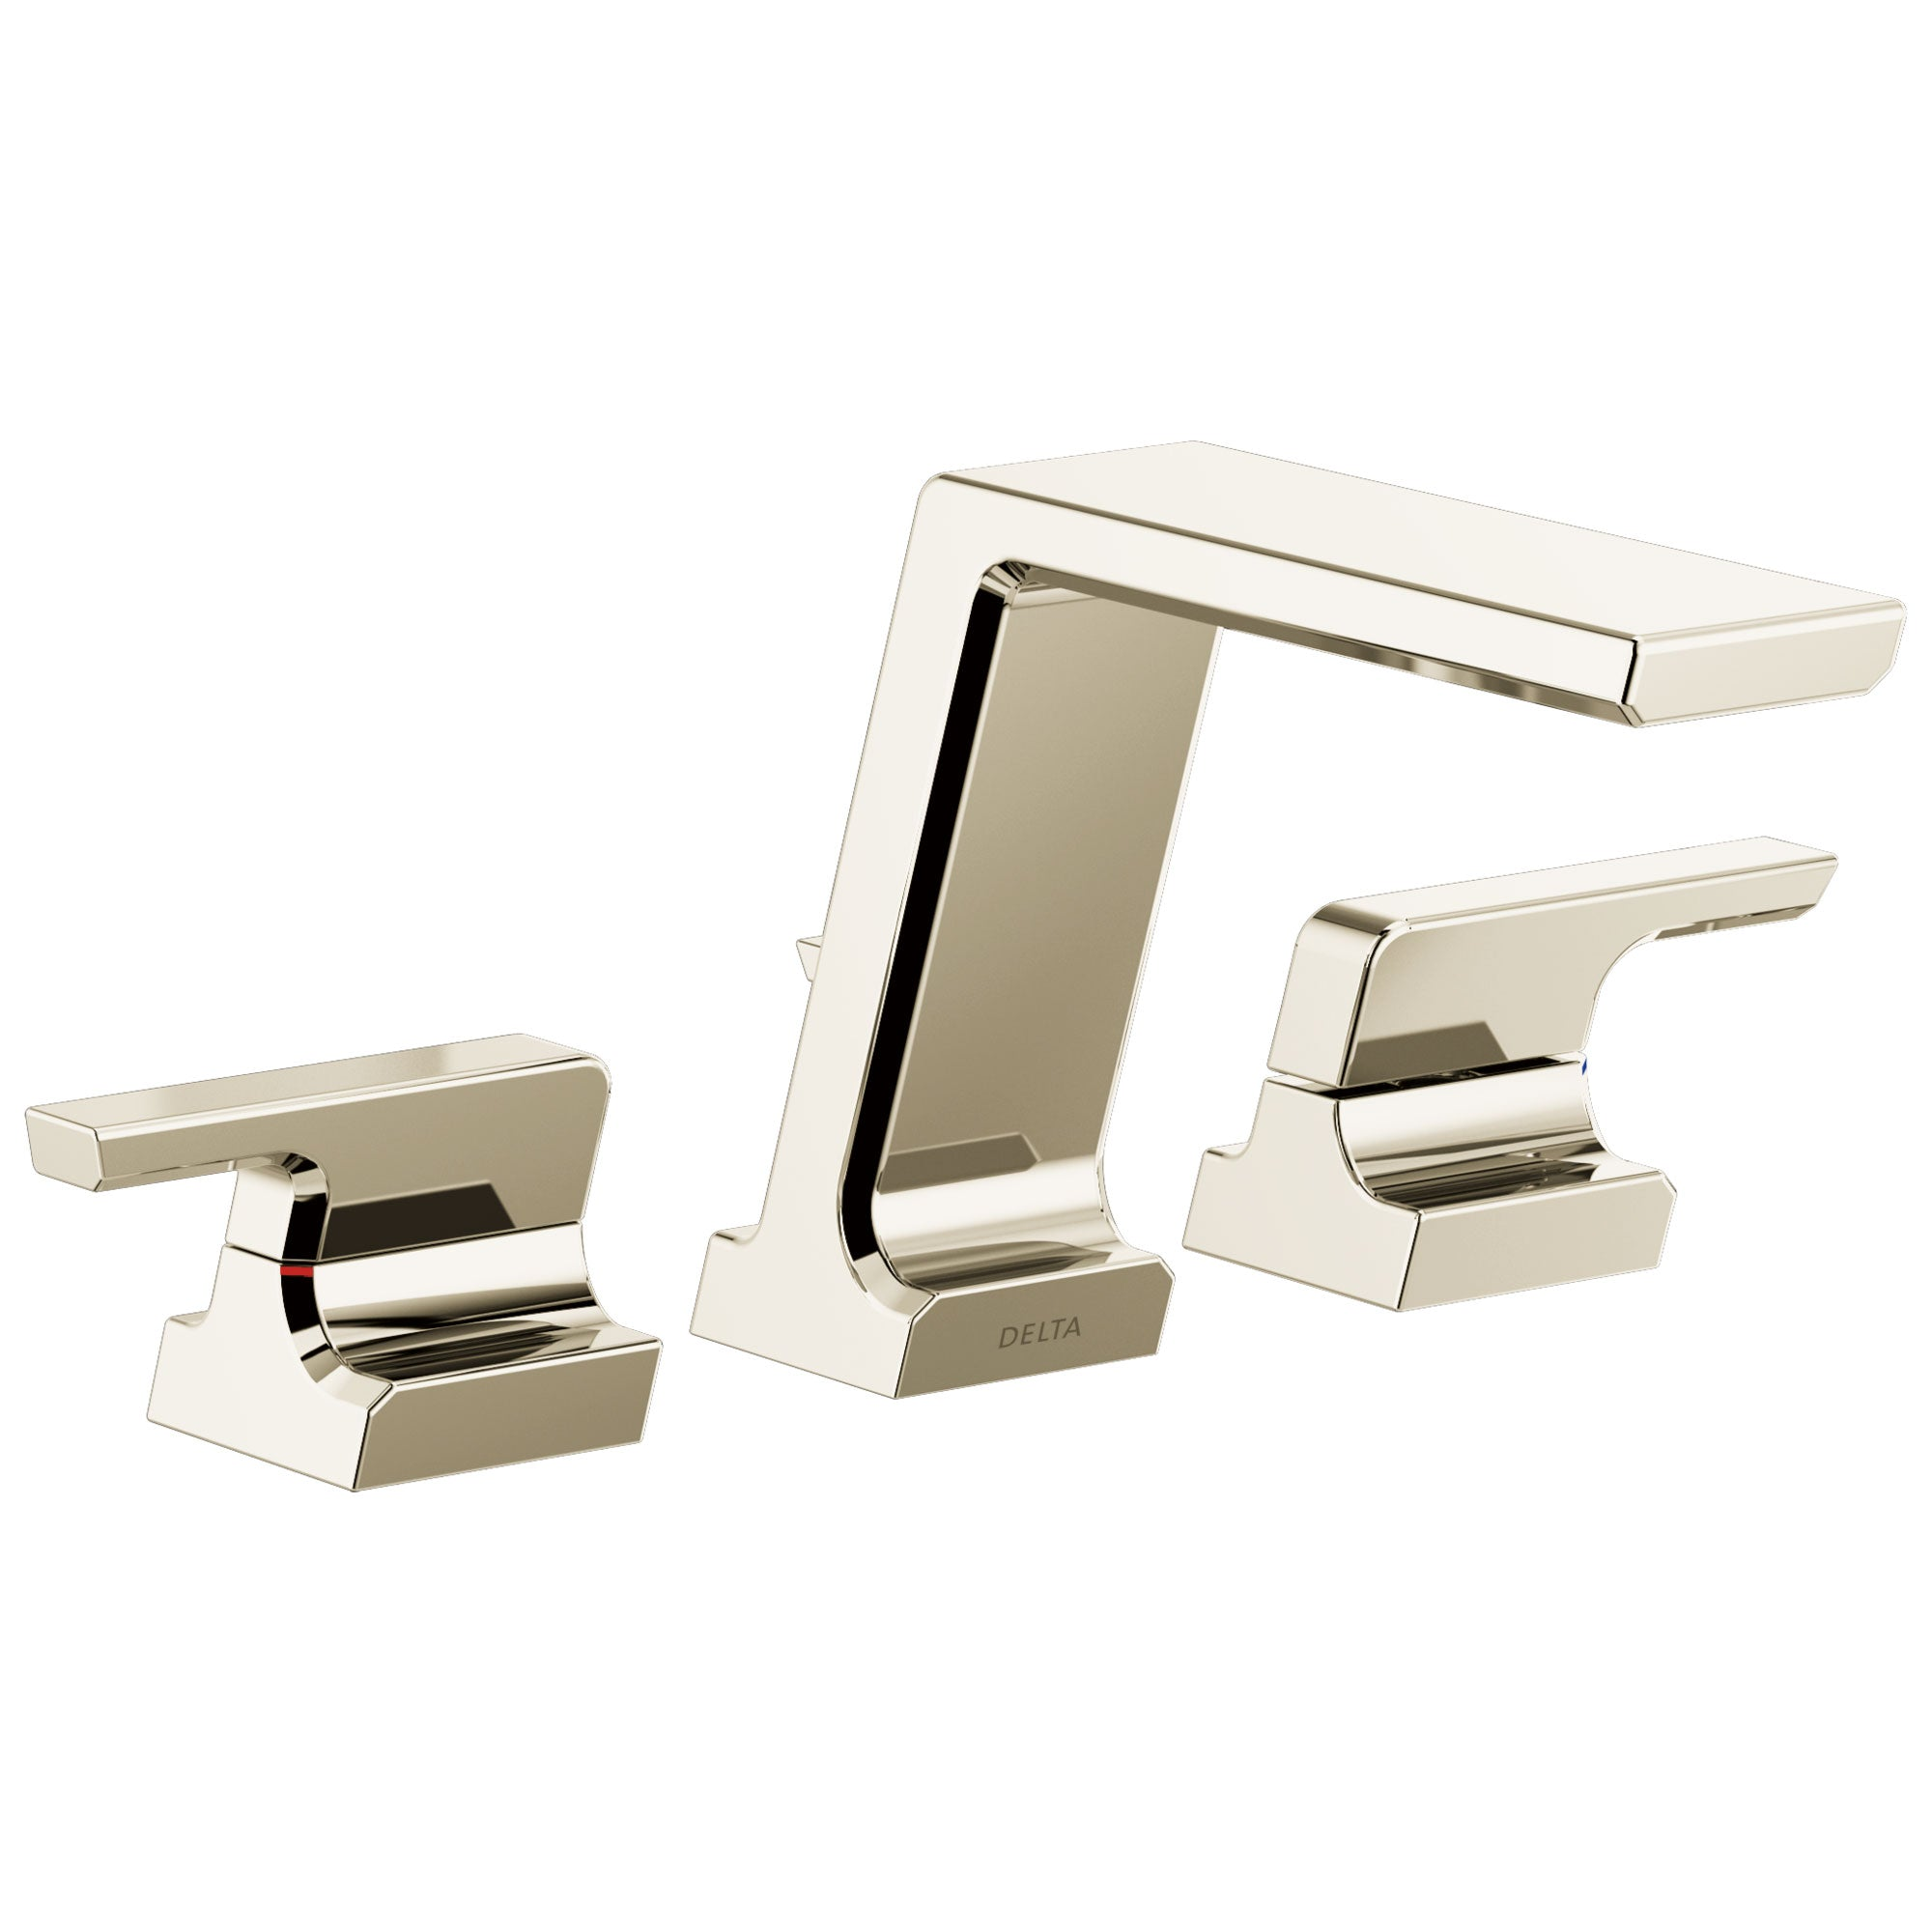 Delta Pivotal Polished Nickel Finish Roman Tub Filler Faucet Trim Kit (Requires Valve) DT2799PN